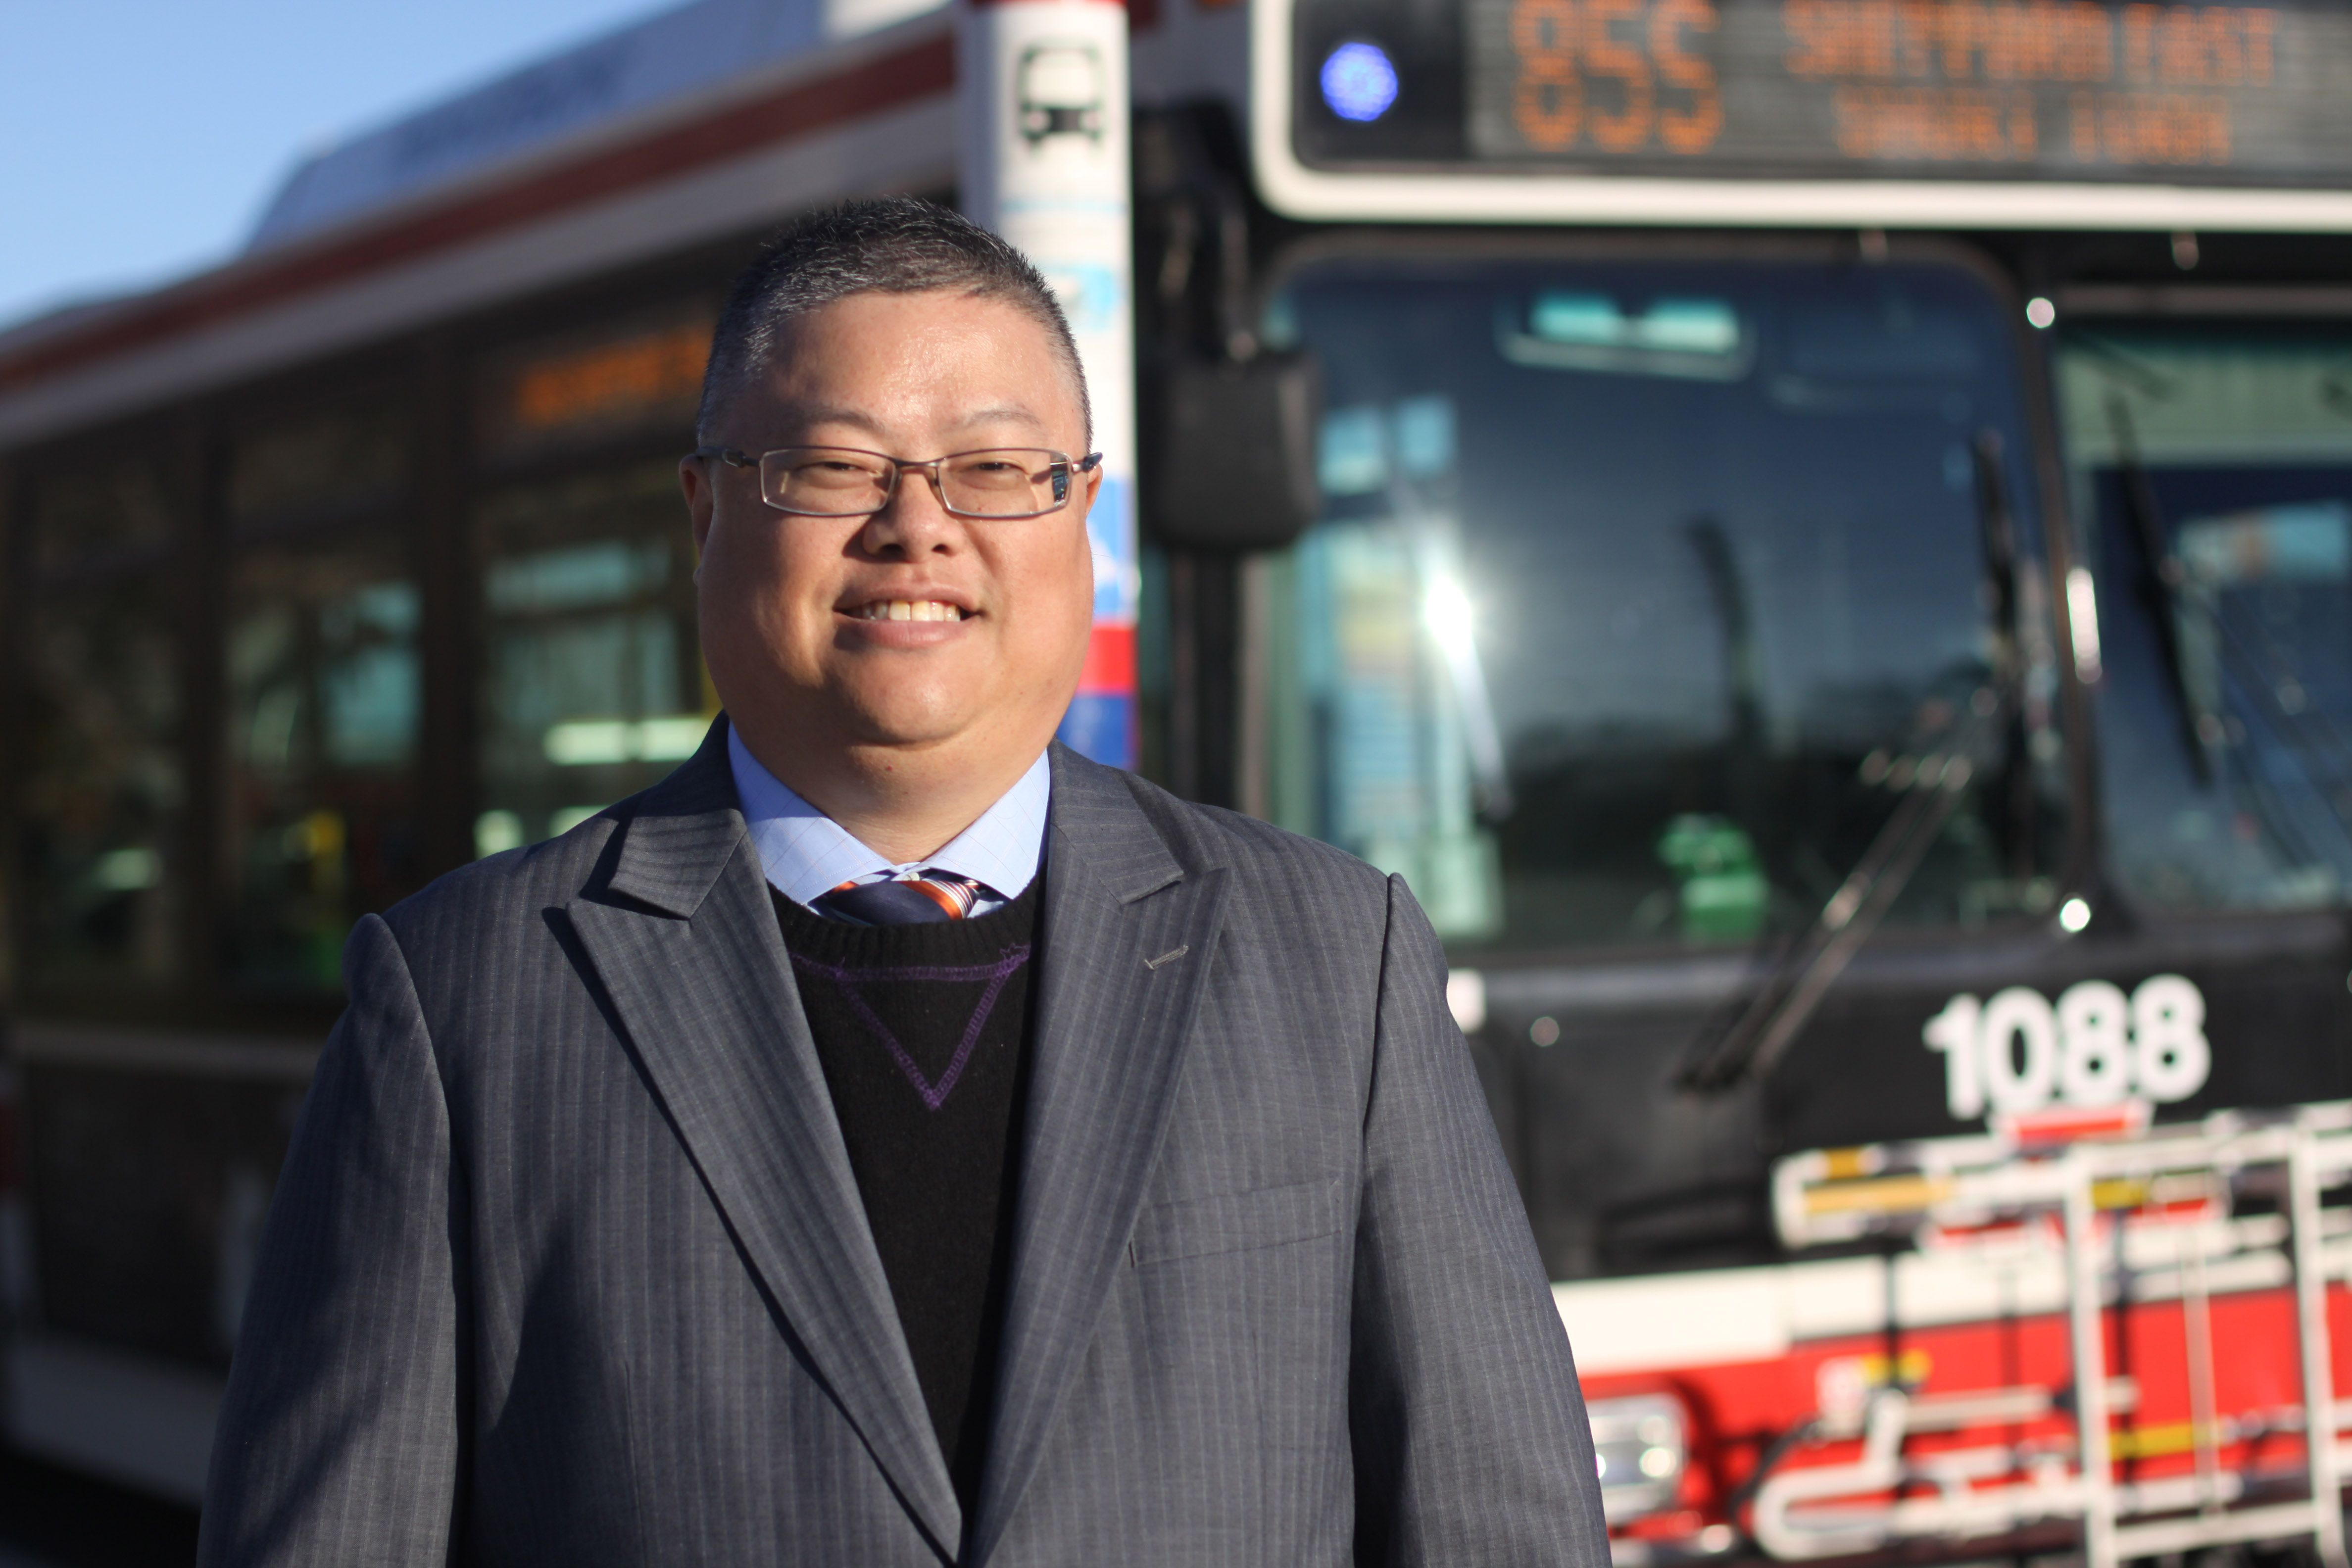 Kingsley Kwok supports Scarborough residents filing Ombudsman complaint on TTC briefing note